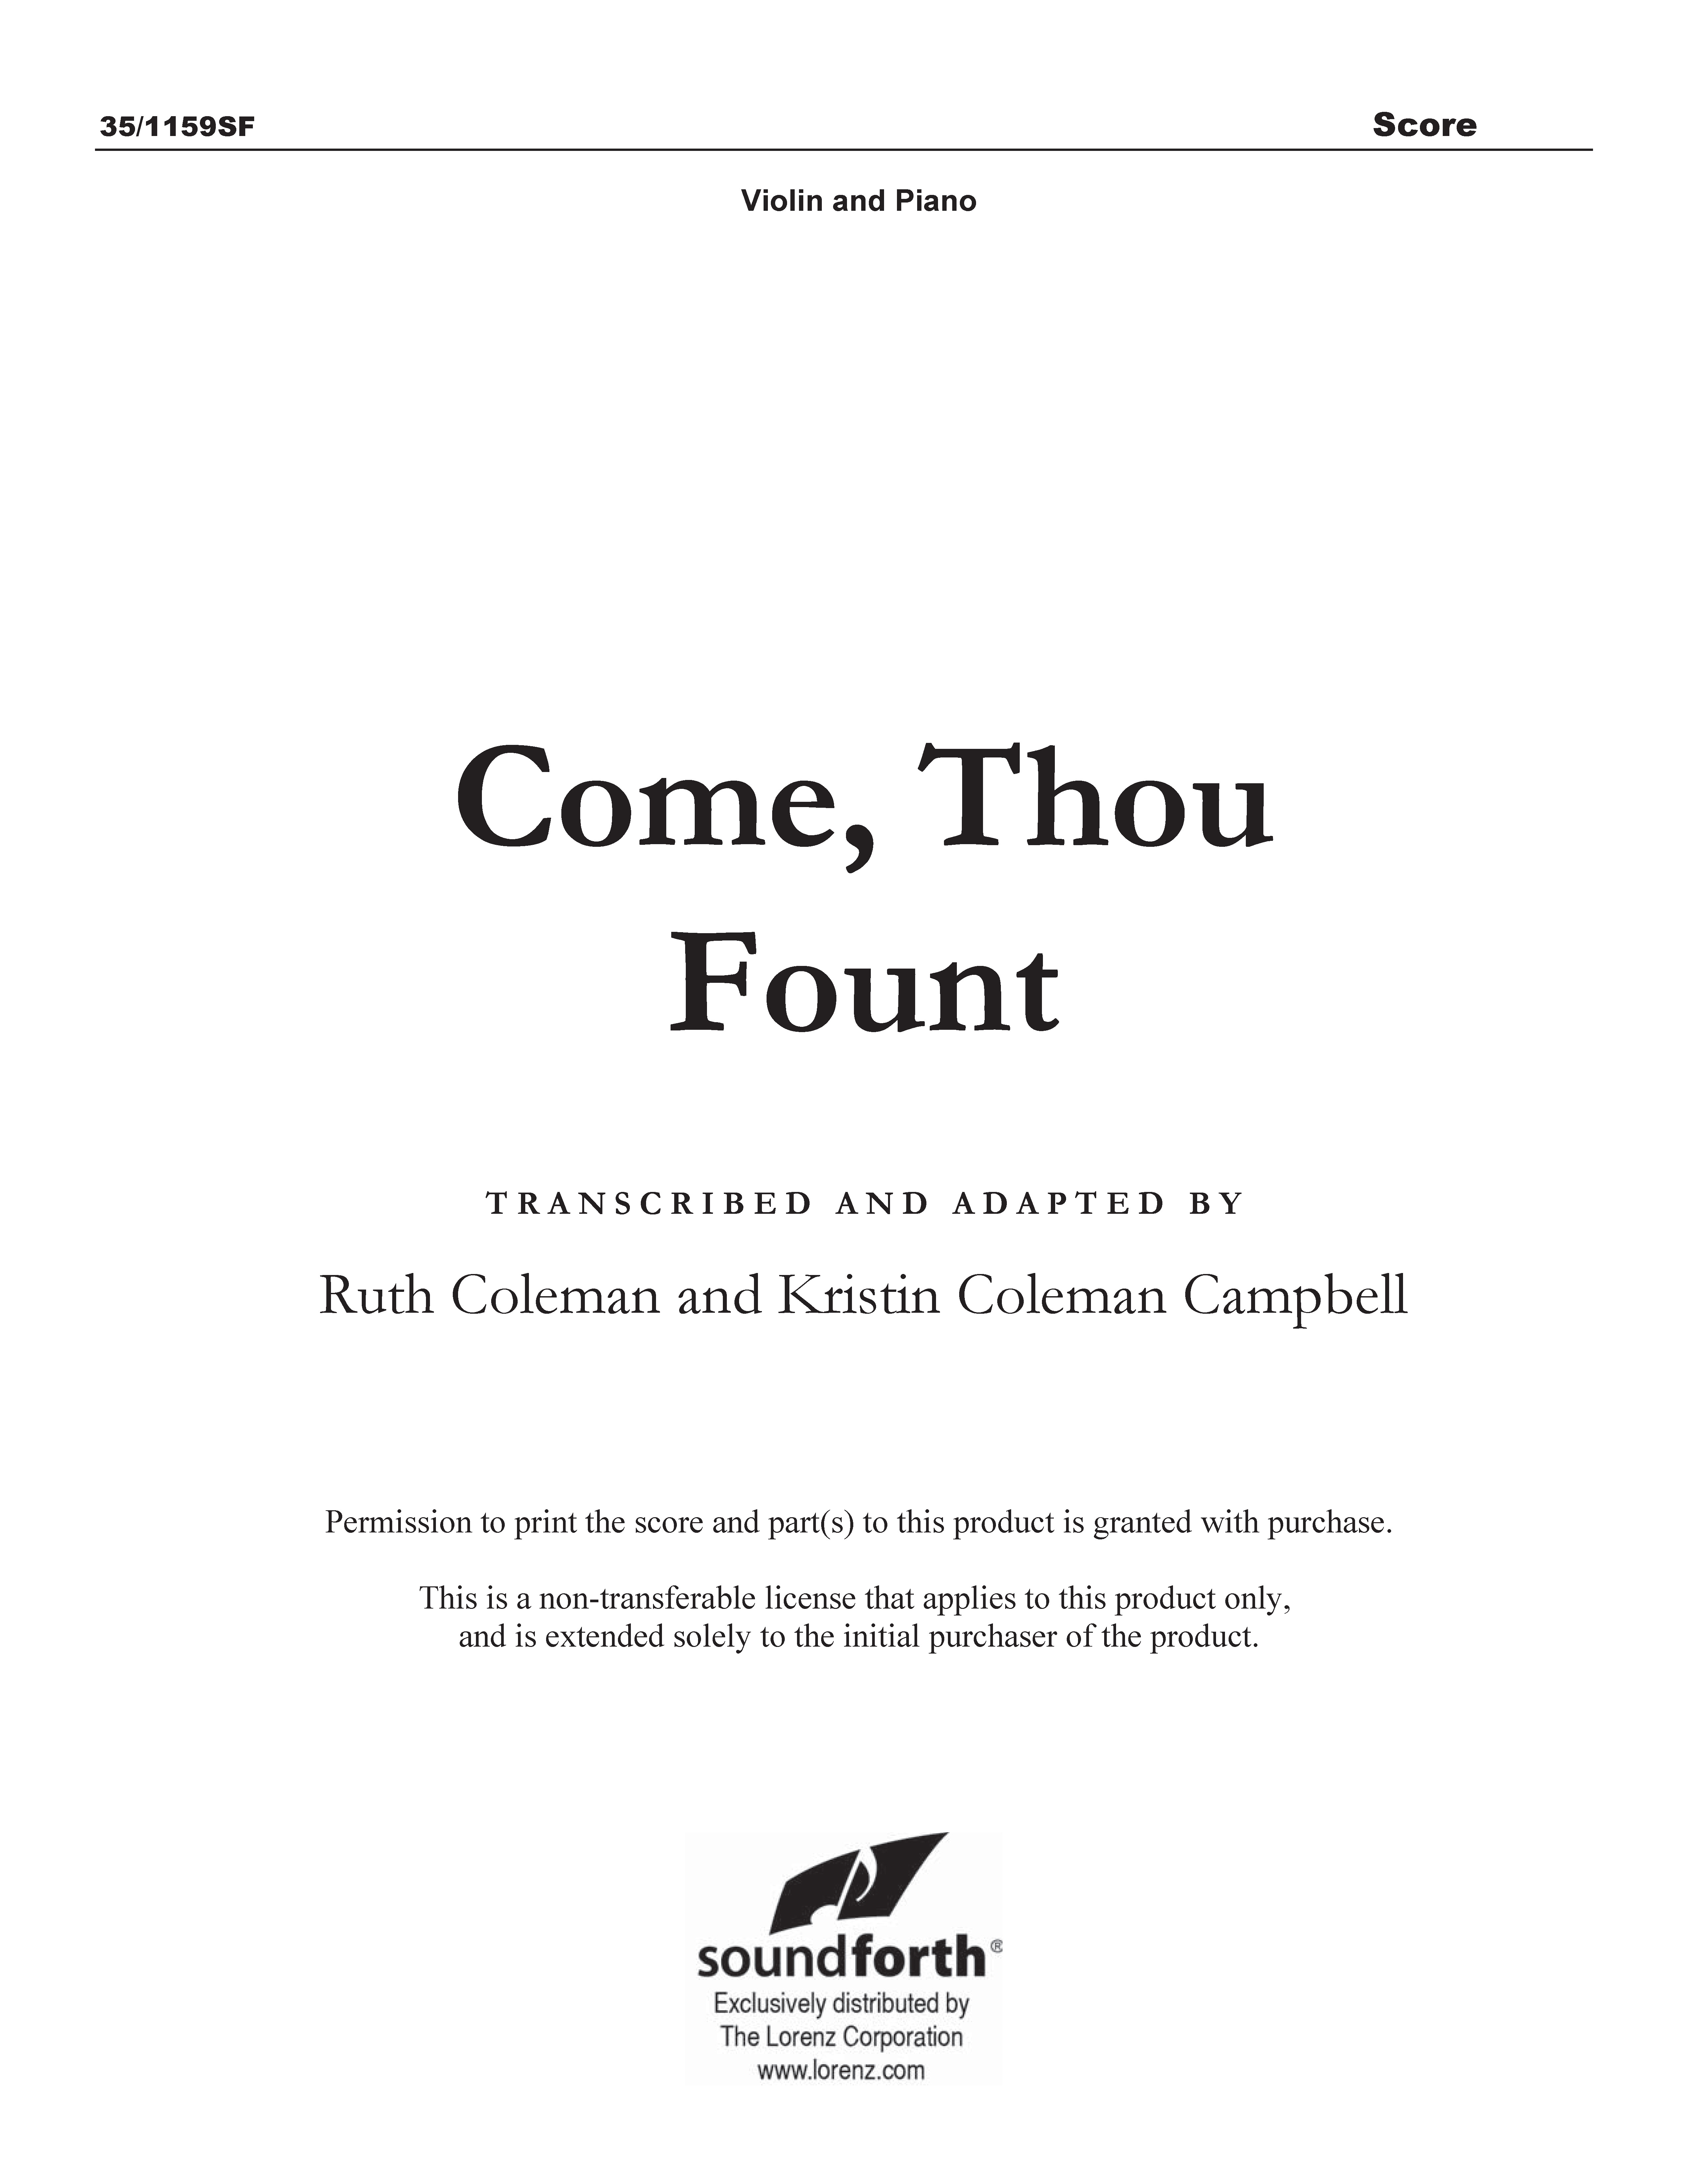 Come, Thou Fount (Digital Delivery)